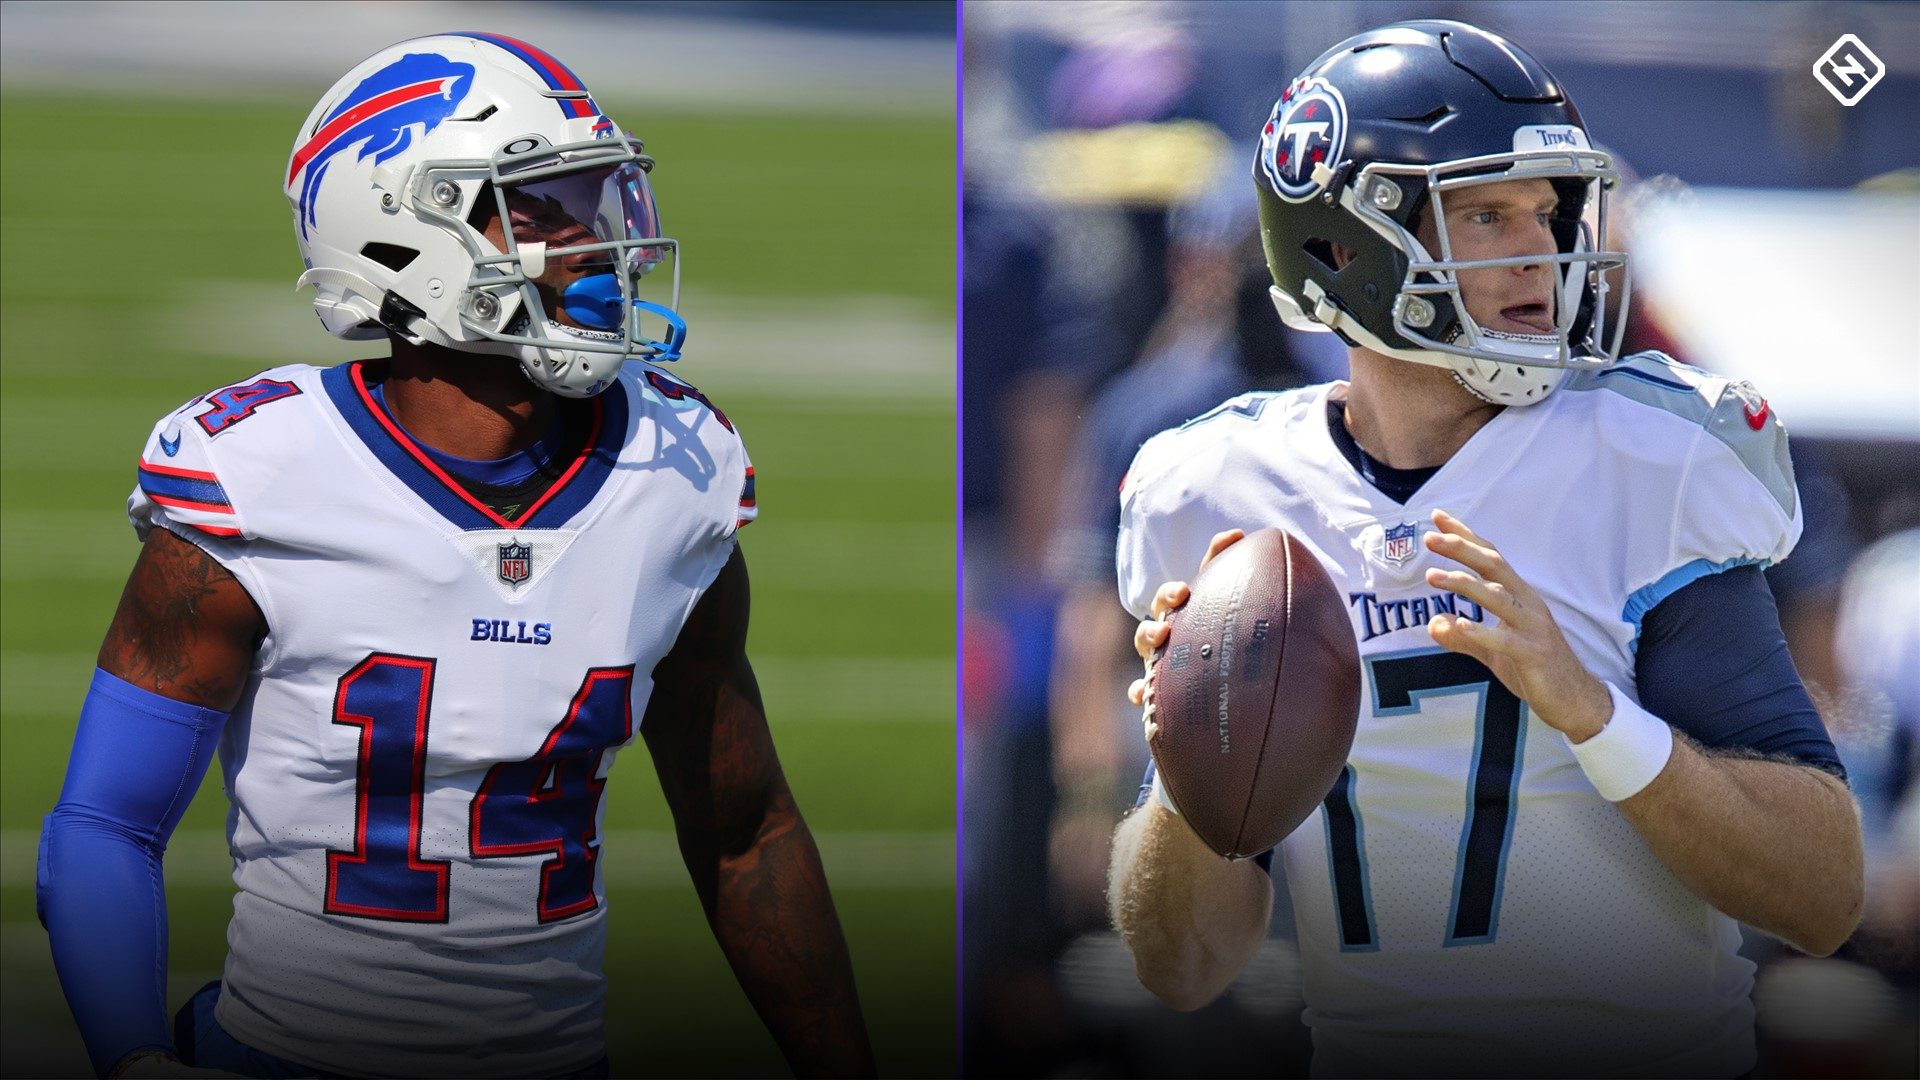 What Time Is The Nfl Game Tonight Tv Schedule Channel For Bills Vs Titans In Week 5 Sporting News Canada